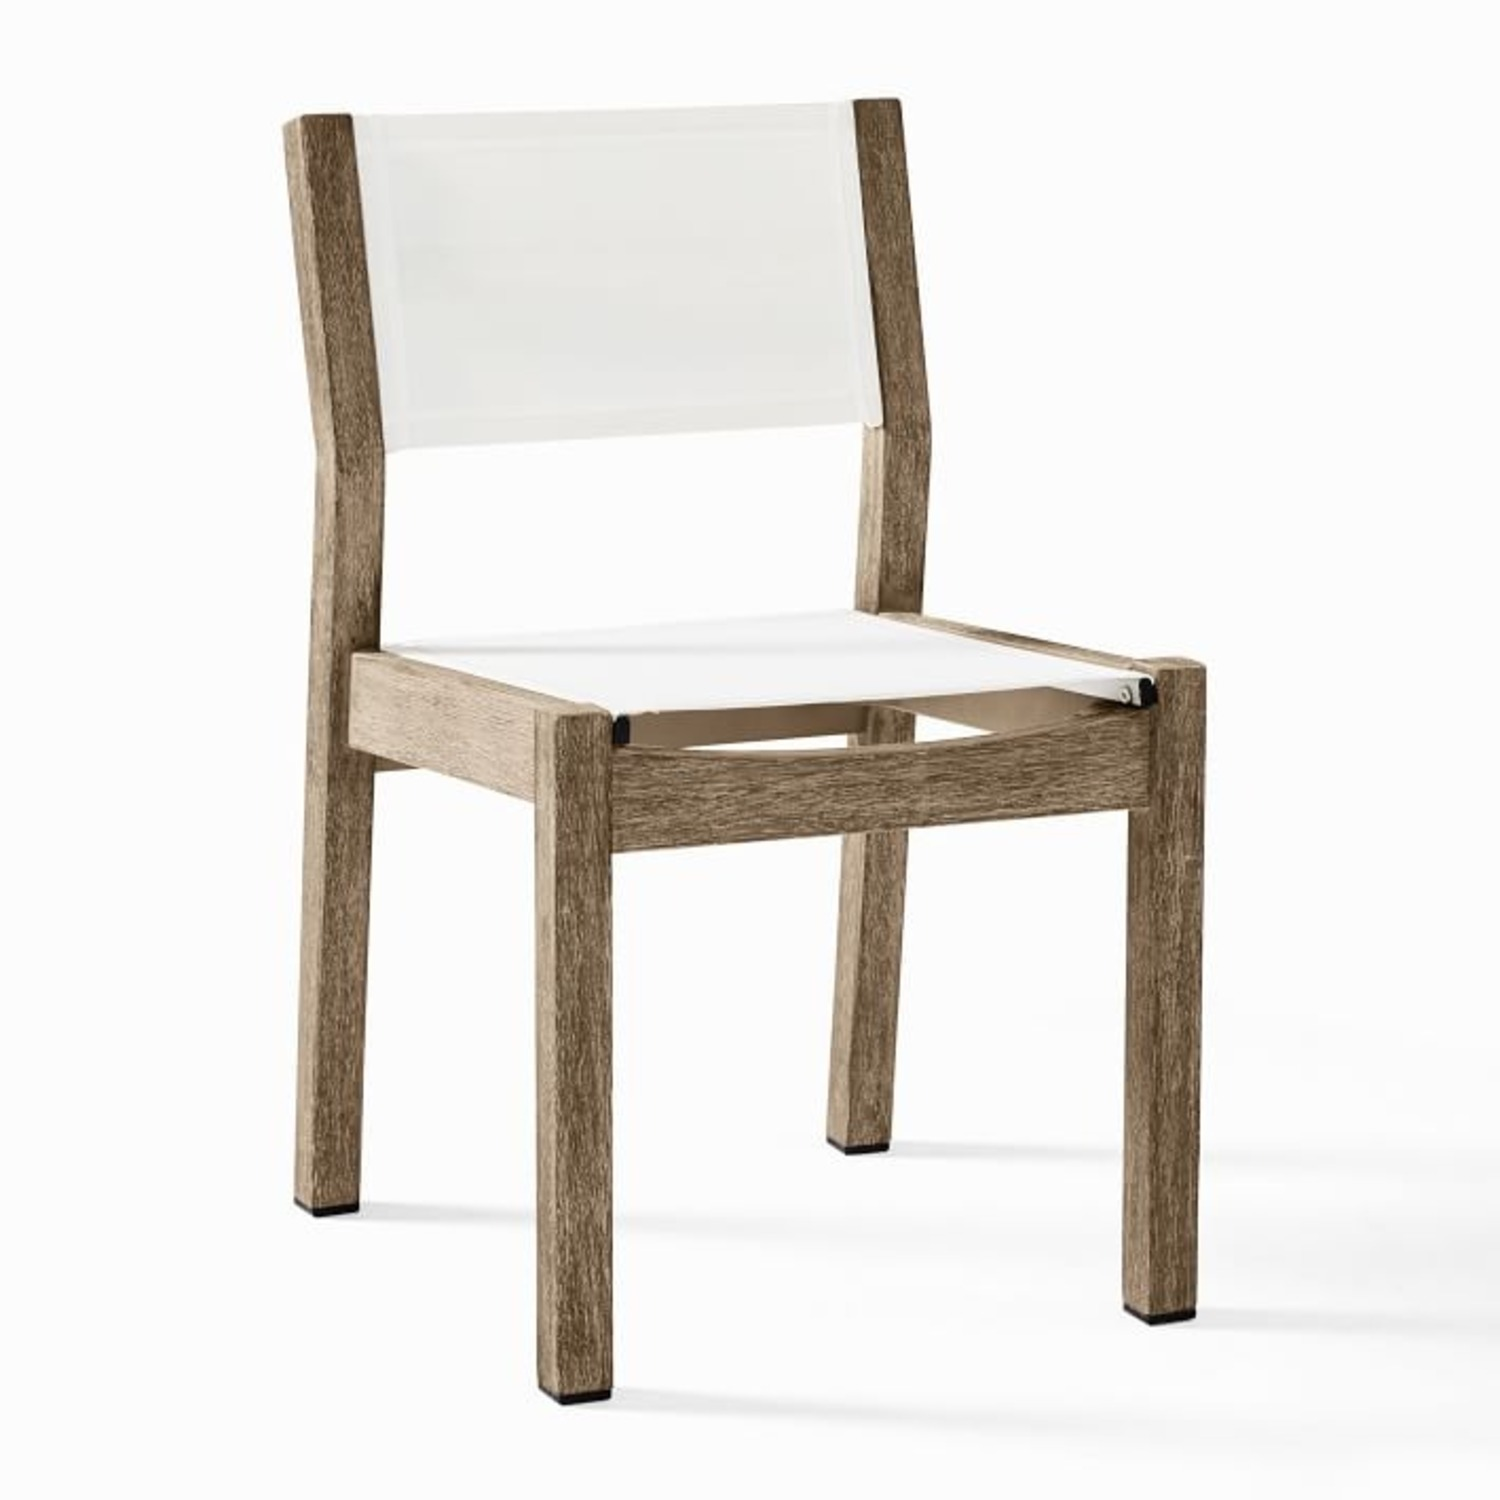 West Elm Portside Dining Chair (Set of 2) - image-3